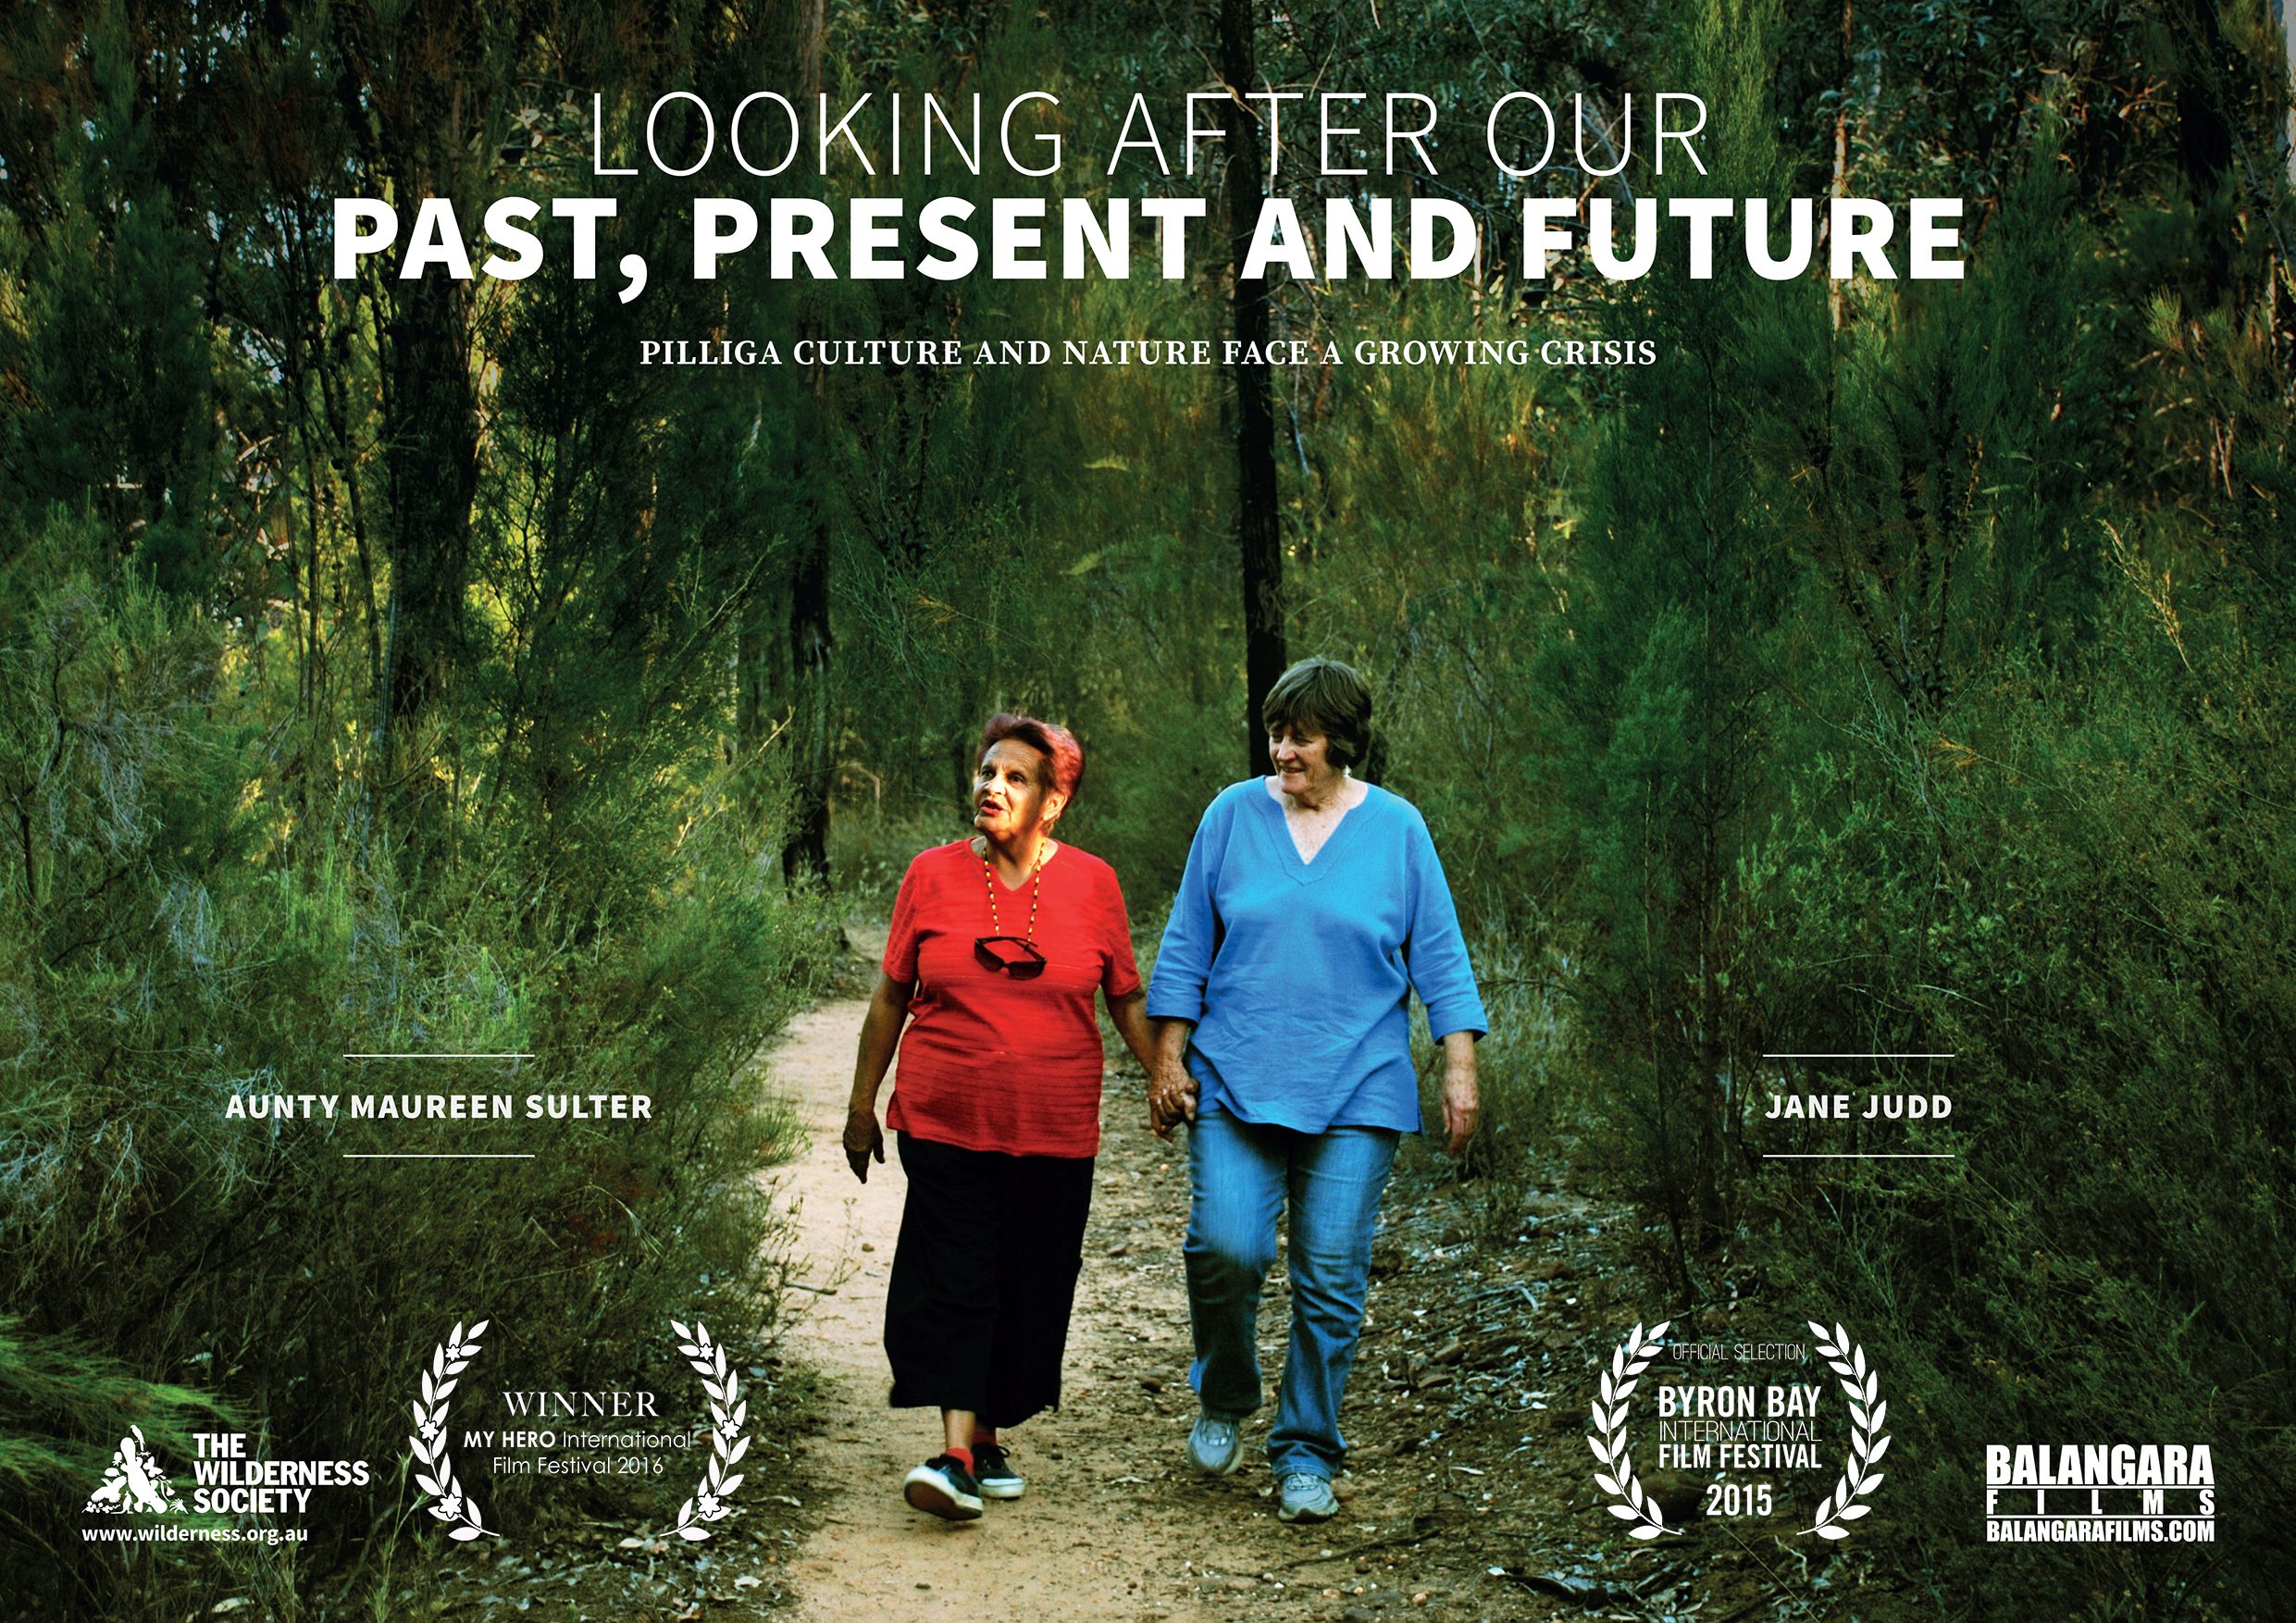 November 4, 2016 PILLIGA FILM WINS 3rd PLACE AT MY HERO IFF  Looking After Our Past, Present and Future   a story about the natural and cultural significance of the Pilliga has won 3rd Place in the environmental category at the 12th  My Hero International Film Festival  in California. We are honored to be part of this important humanitarian festival that celebrates hero's who are changing the world.  The 8-minute film produced for The Wilderness Society centers around the relationship between Aunty Maureen Sulter, a Gomeroi Elder, and Jane Judd, a local resident from the Pilliga region. It focuses in on the significance of our local traditional language diversity and how that's connected to the biodiversity in the Pilliga.  Following the festival, the film will be celebrated online on the MY HERO website winners page and shared with millions of people worldwide.  My Hero website   A second Balangara film   Looking After Our Greatest Blessing   also picked up an Honourable Mention at the United States festival. The film features Anne Kennedy, President of the Great Artesian Basin Protection Group who is determined to save the precious clean water beneath the Pilliga forest for communities throughout New South Wales before coal seam gas mining companies contaminate the groundwater.  The festival winning films will be screened on Friday 18 November between 5-9pm and awards ceremony takes place after another session of films on Saturday 19 November at 7:30pm.  Where: Ann and Jerry Moss Theater  Herb Alpert Educational Village  Capshaw-Spielberg Center for Educational Justice  3131 Olympic Blvd. Santa Monica, CA 90404